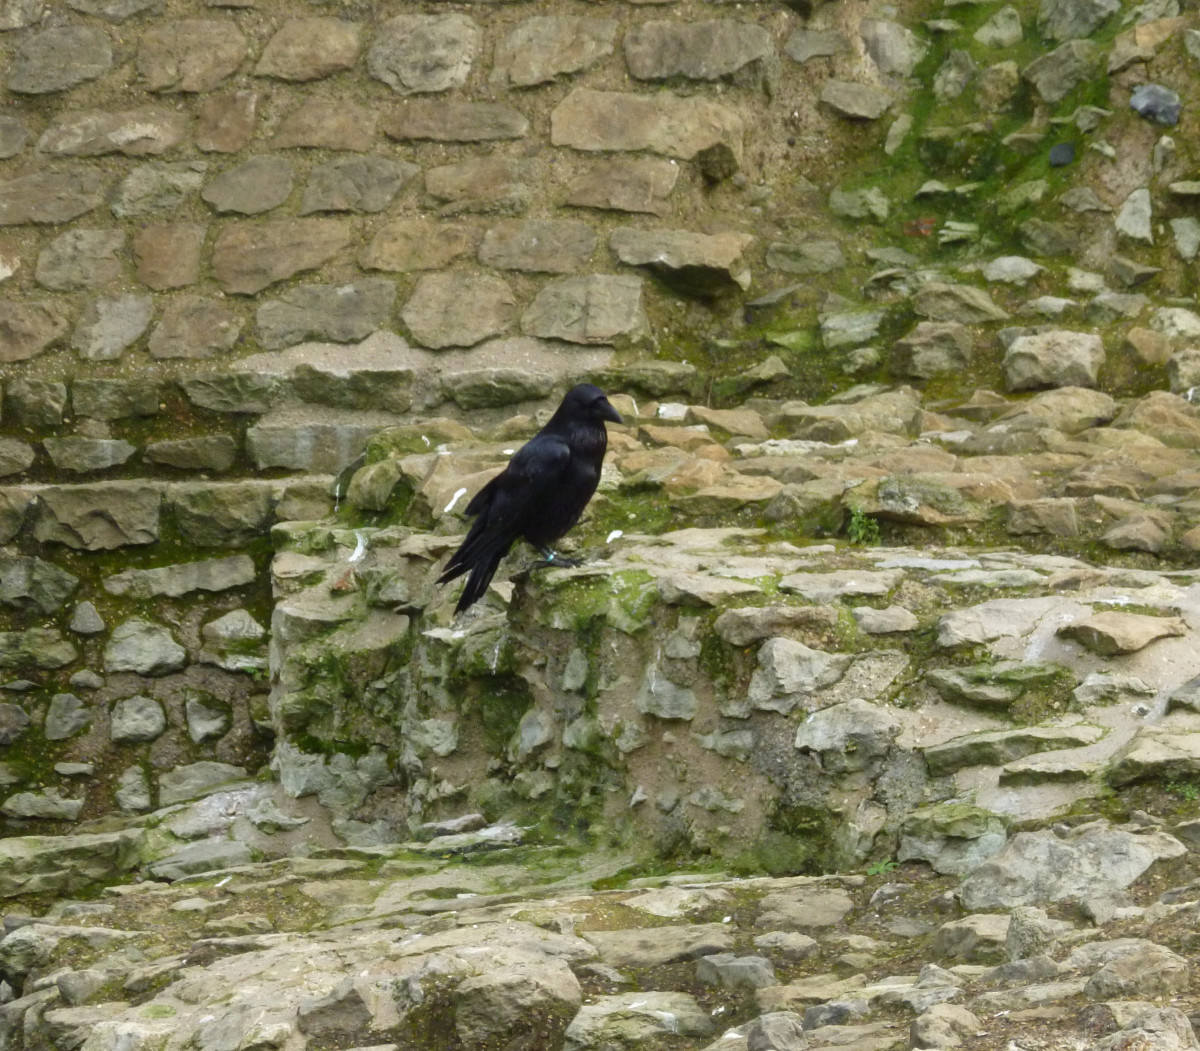 Ravens at the tower are a tradition